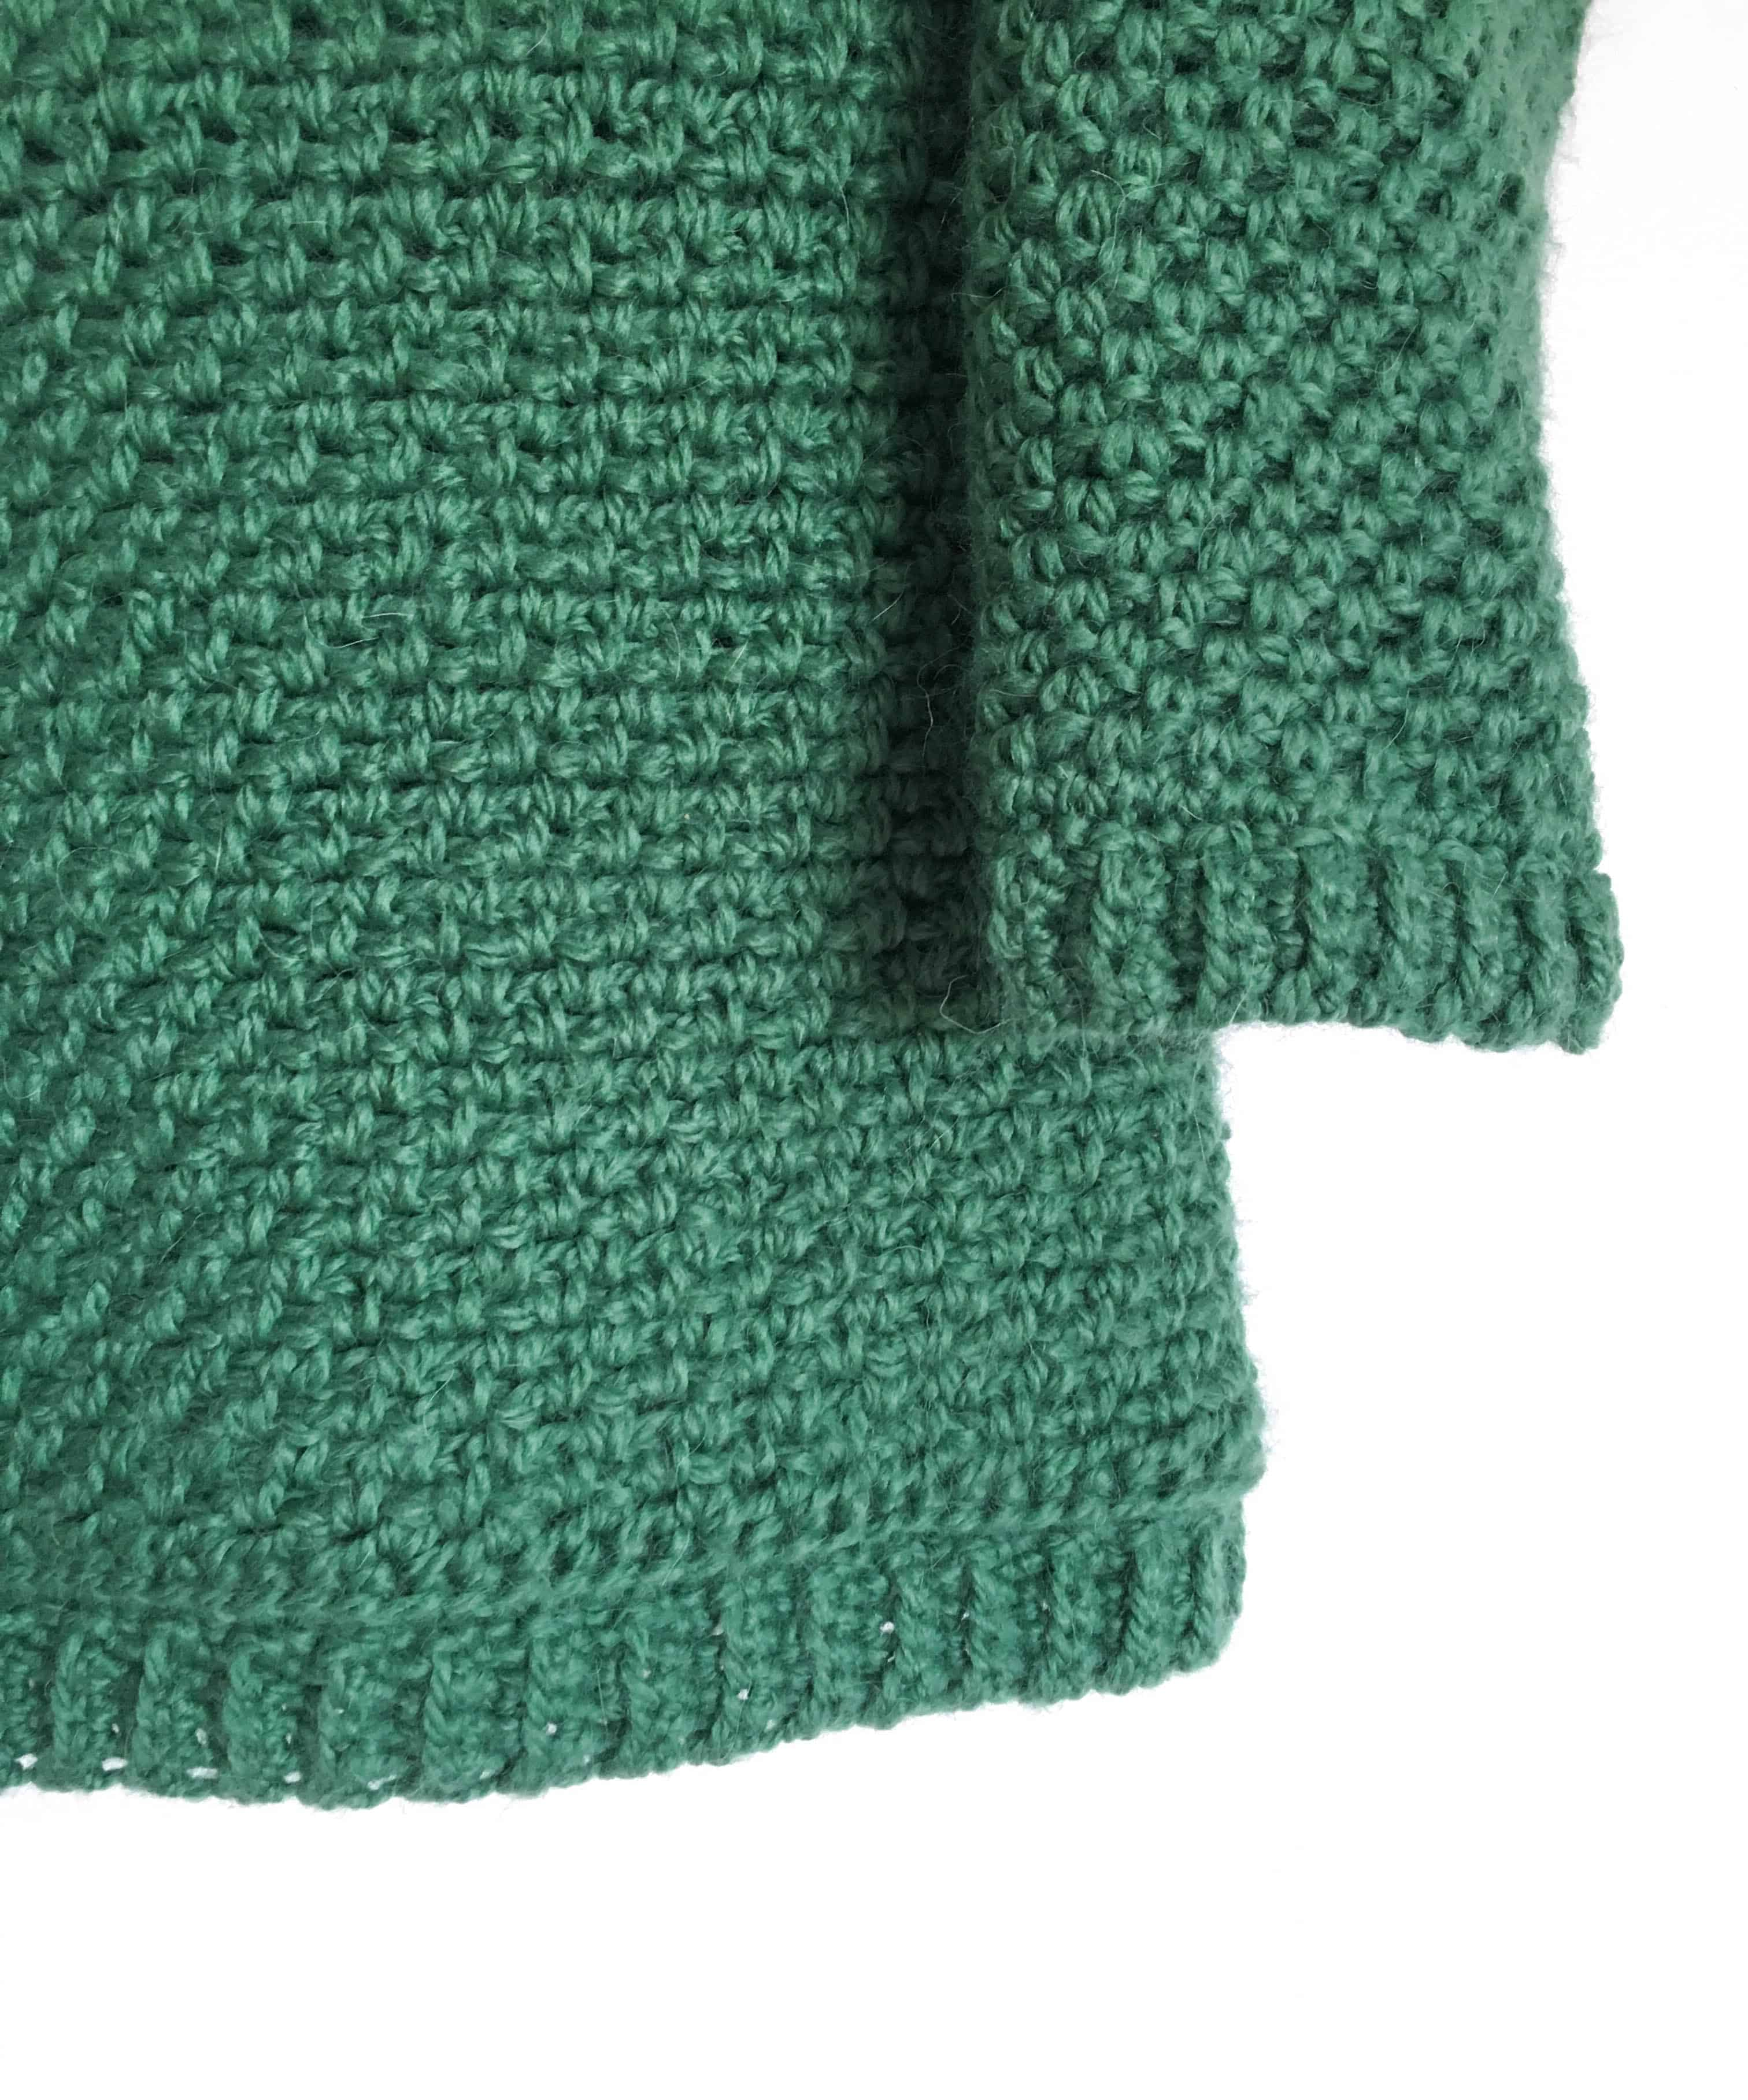 10 Opaque Crochet Stitches Without All The Holes Dora Does